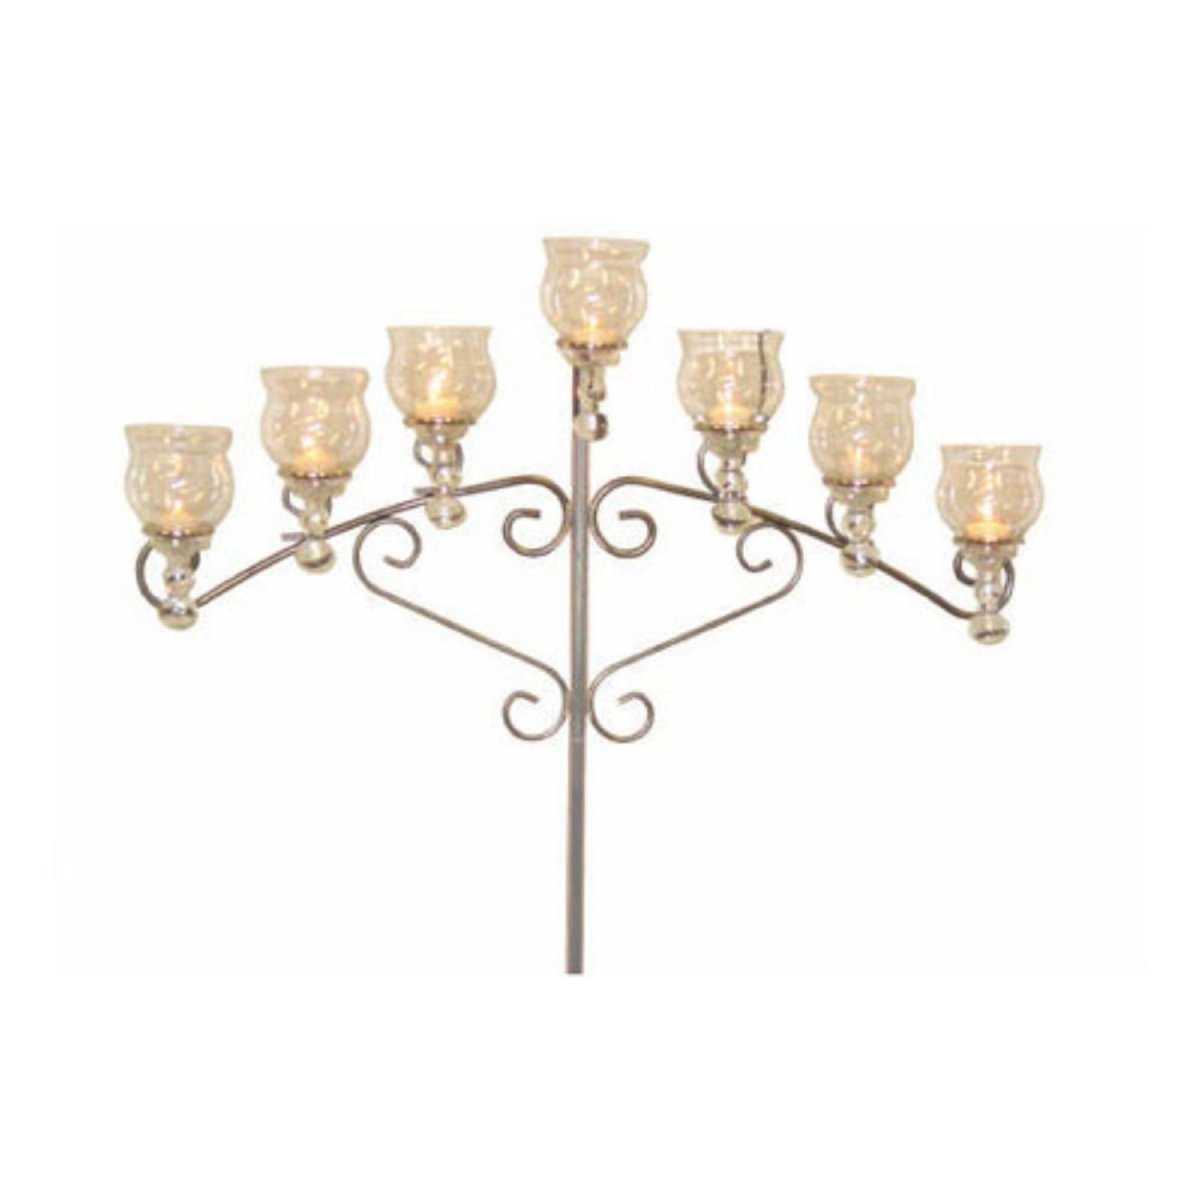 Floor Candelabras for Weddings